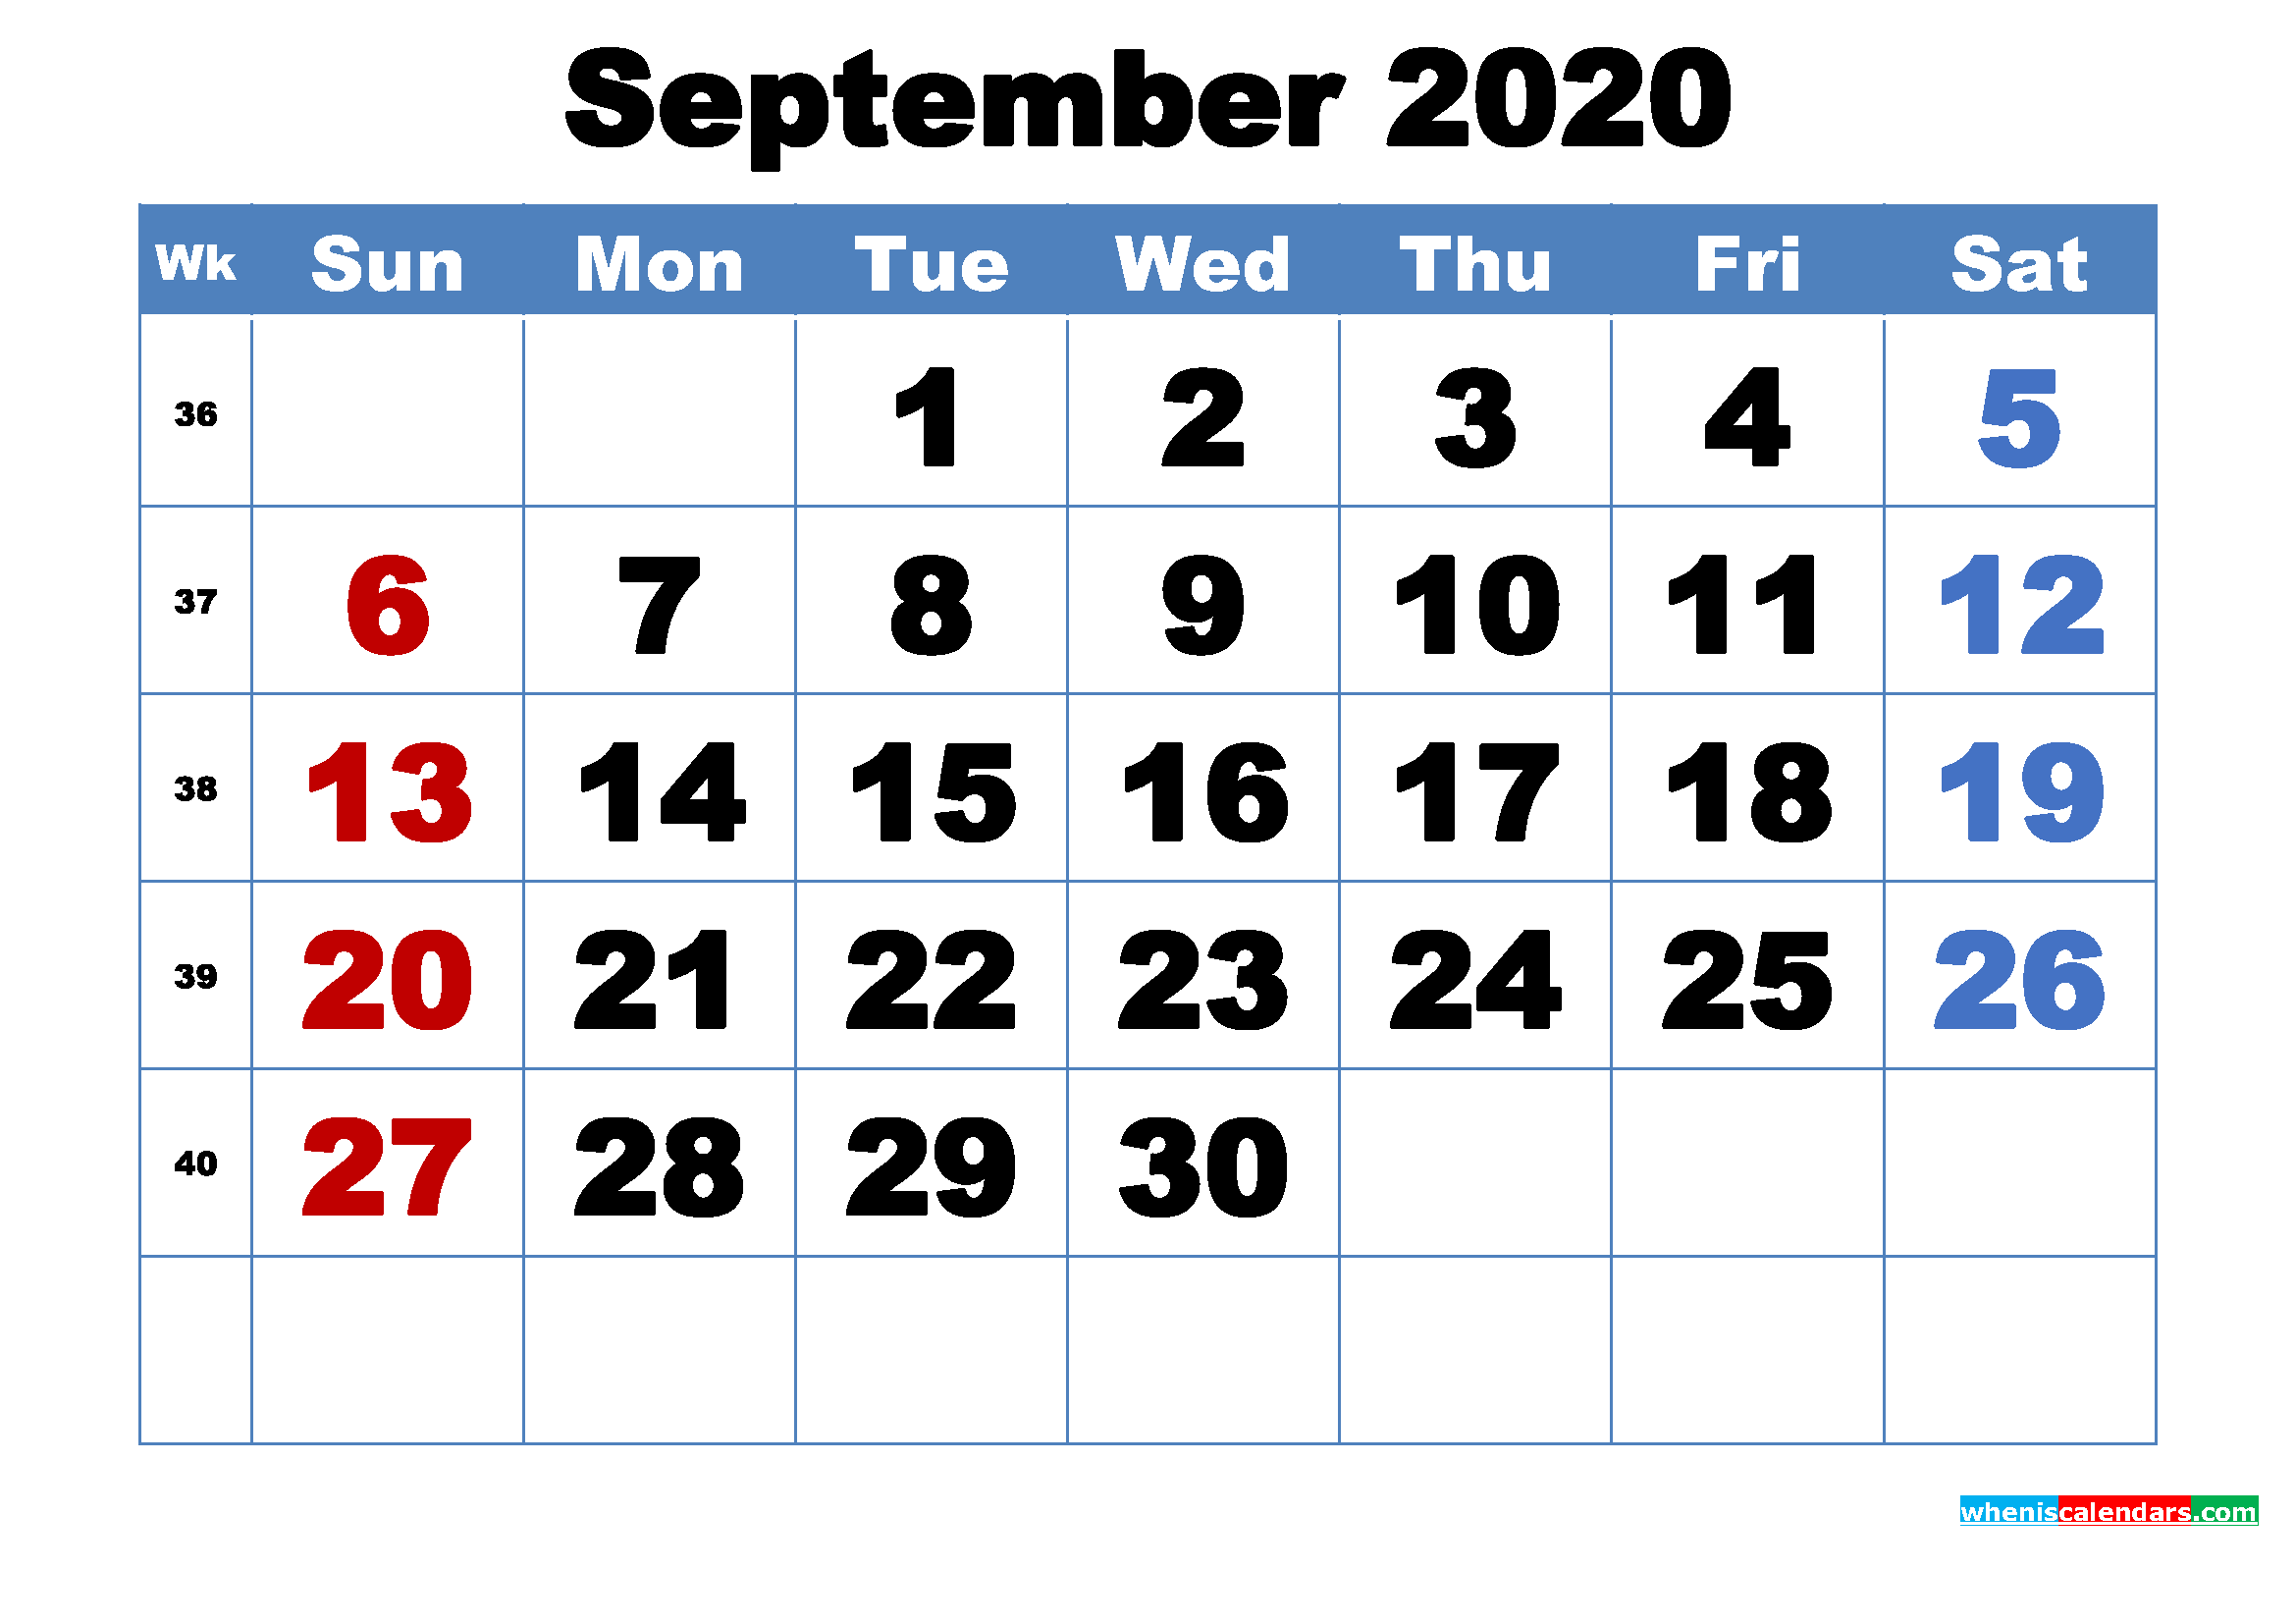 Free Printable September 2020 Calendar Template Word, PDF